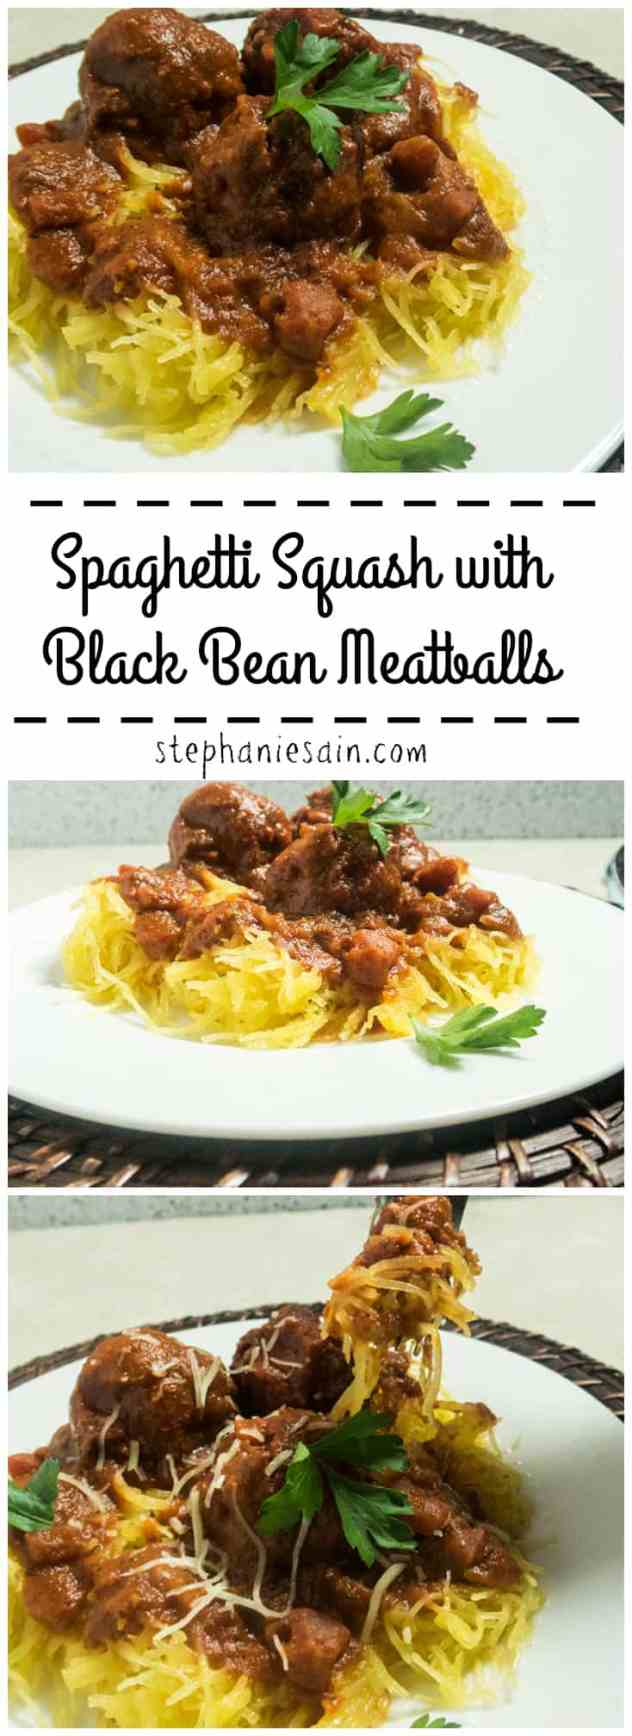 Spaghetti Squash with Black Bean Meatballs is a healthier, tasty version for spaghetti & meatballs. Lower carb, Vegan, and Gluten Free.